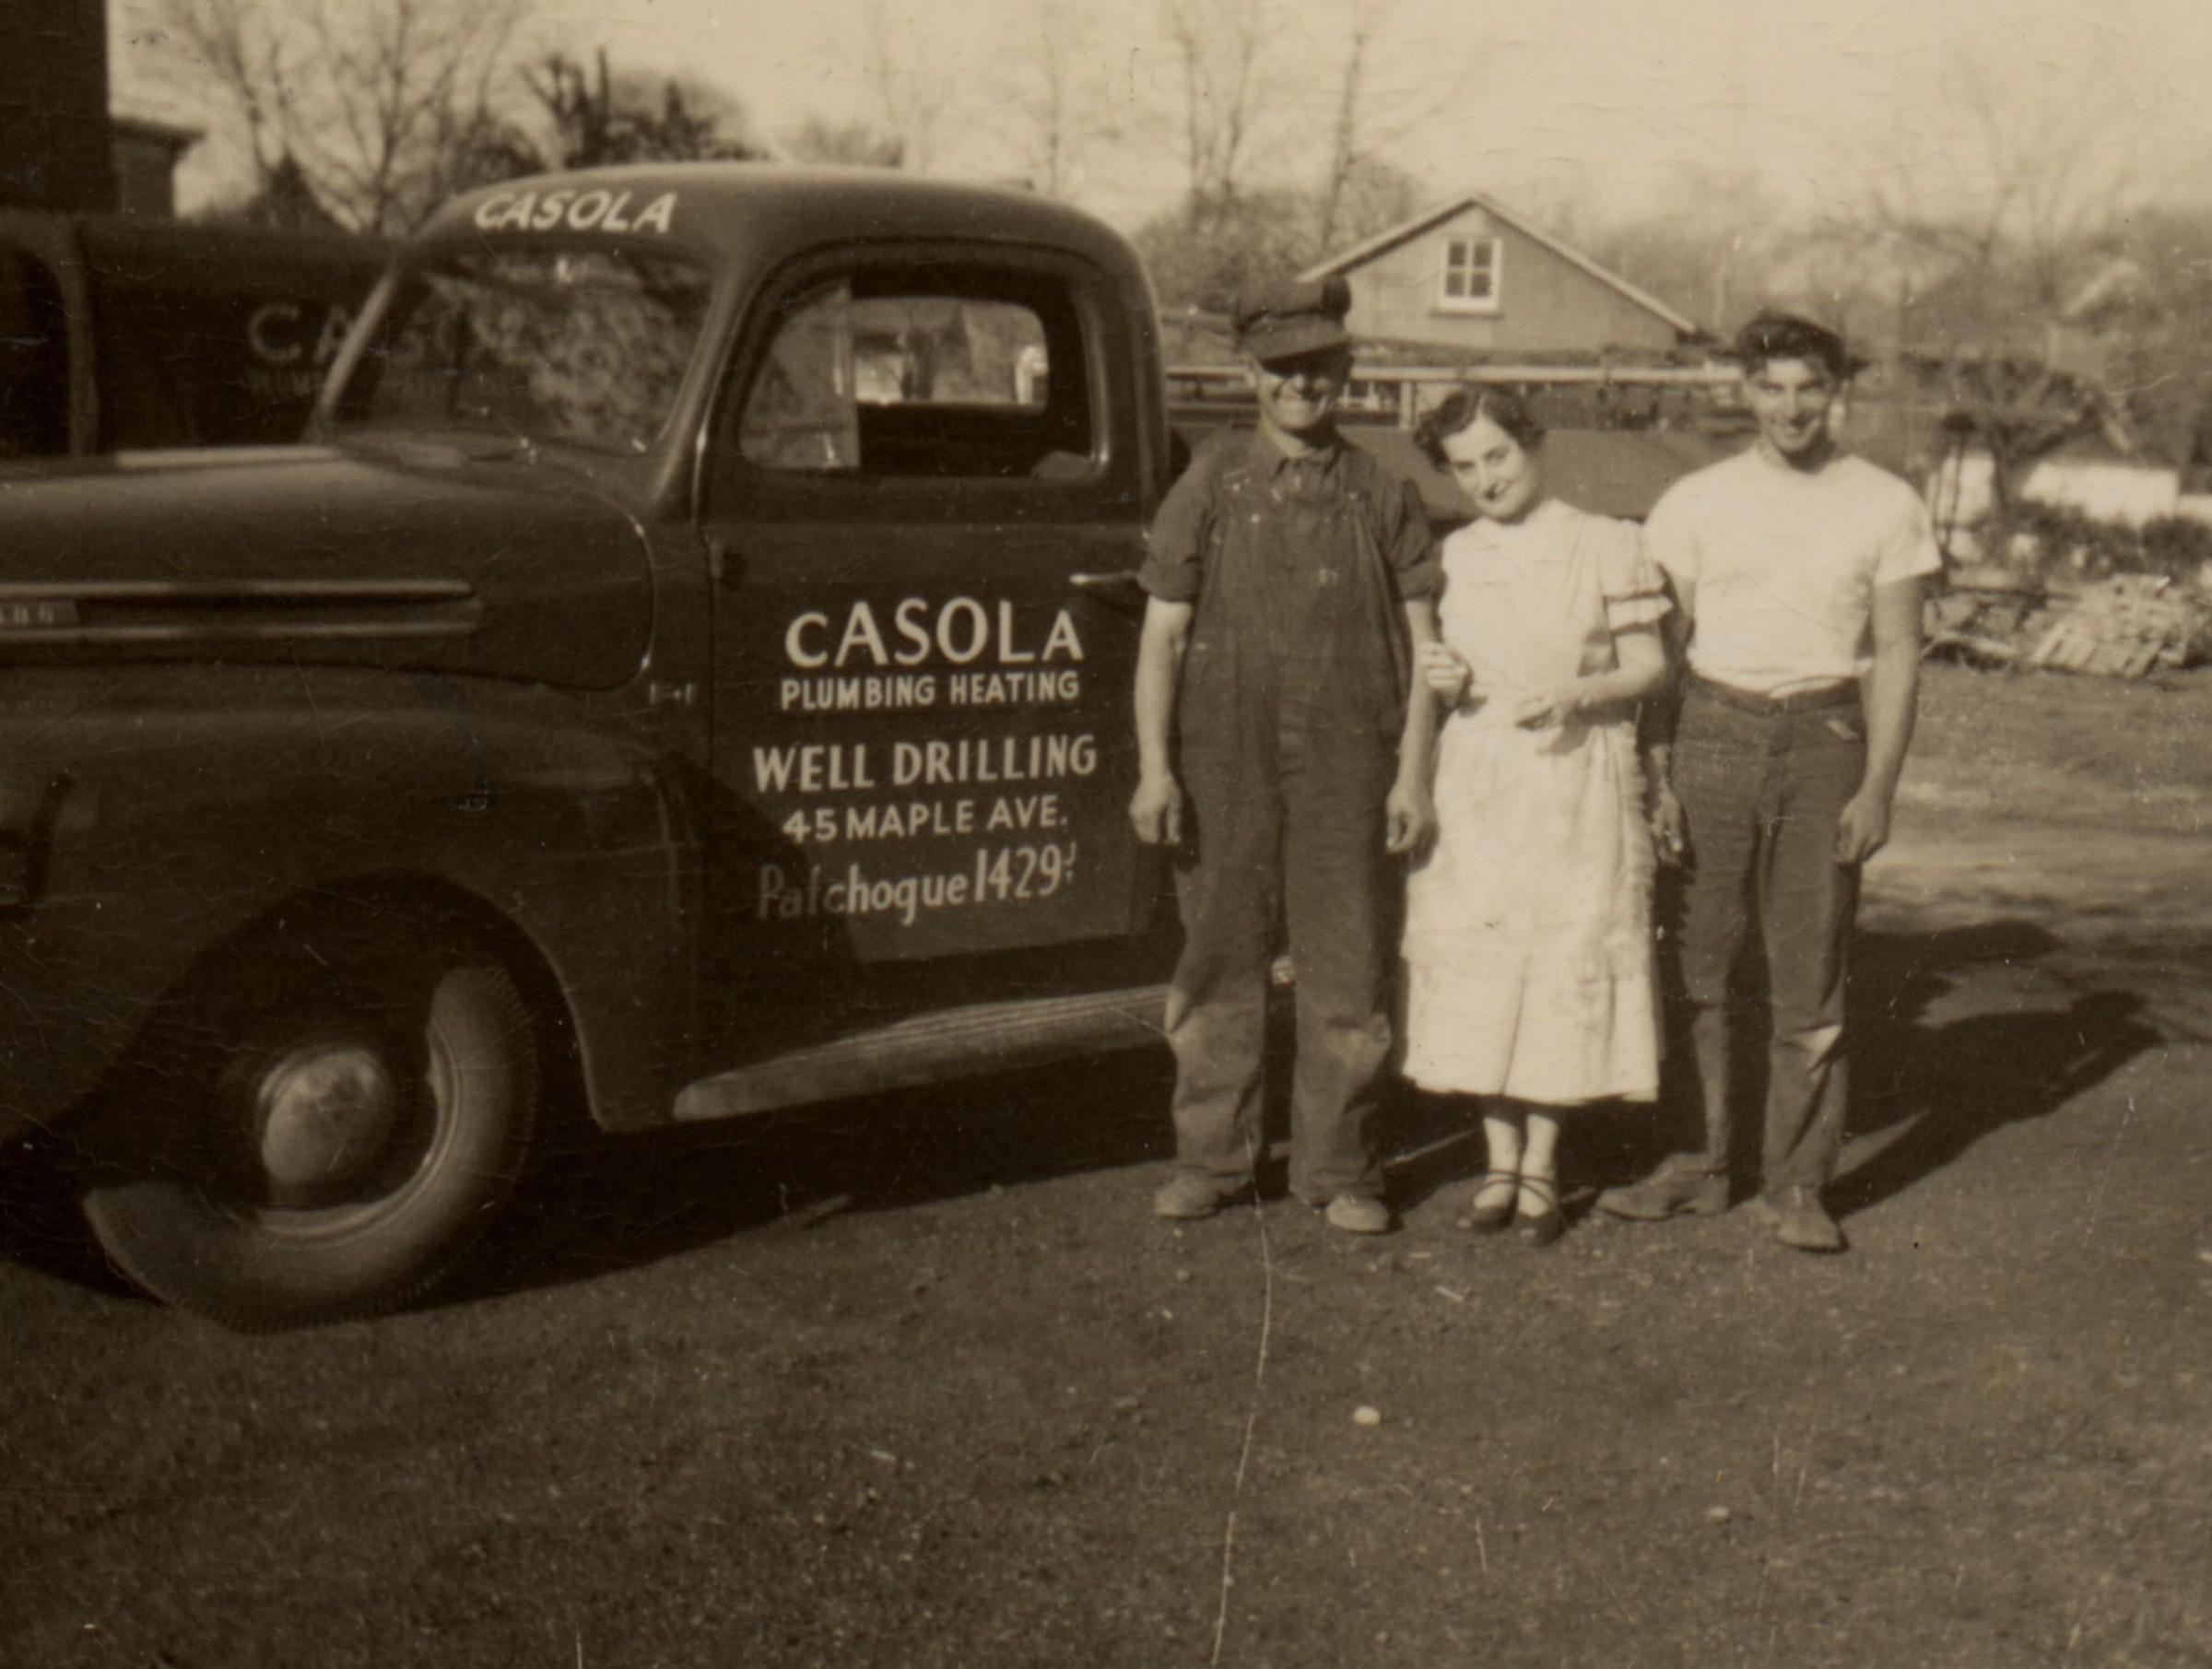 Casola Well Drillers, Inc. image 4